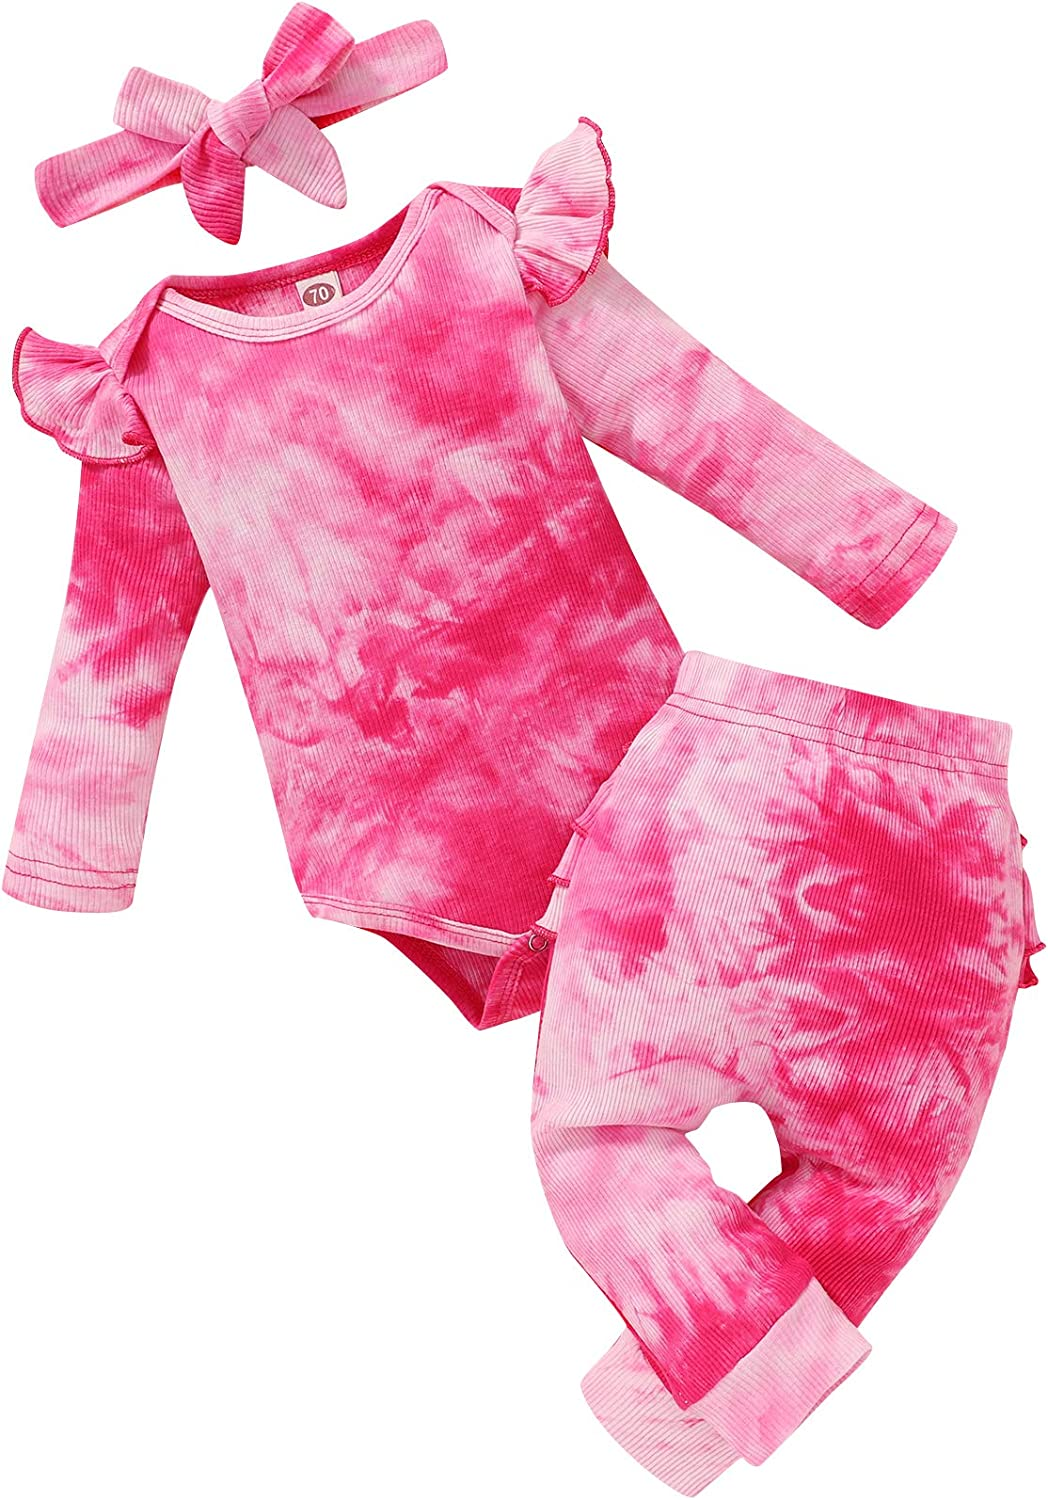 Baby Girl Tie-dye Clothes Long Sleeve Romper Tops Pants with Headband 3Pcs Toddler Infant Fall Winter Outfits Set